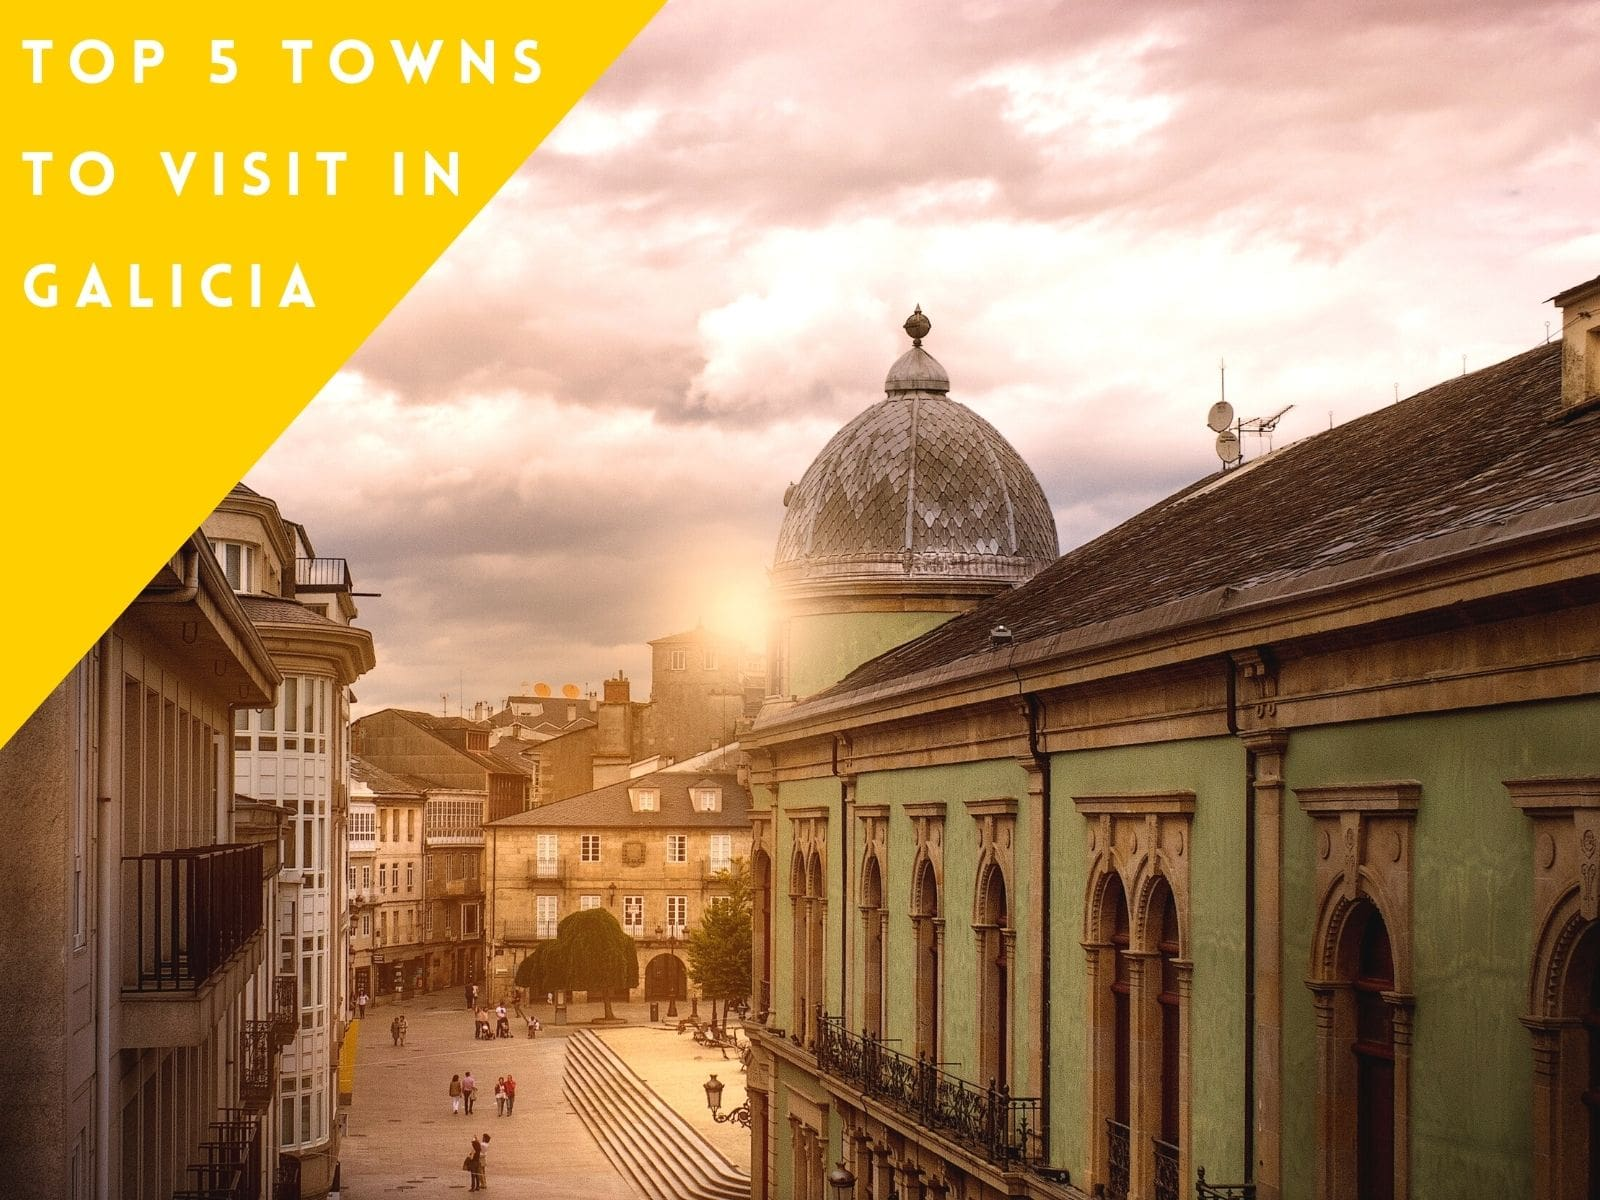 Top 5 towns to visit in Galicia galiwonders